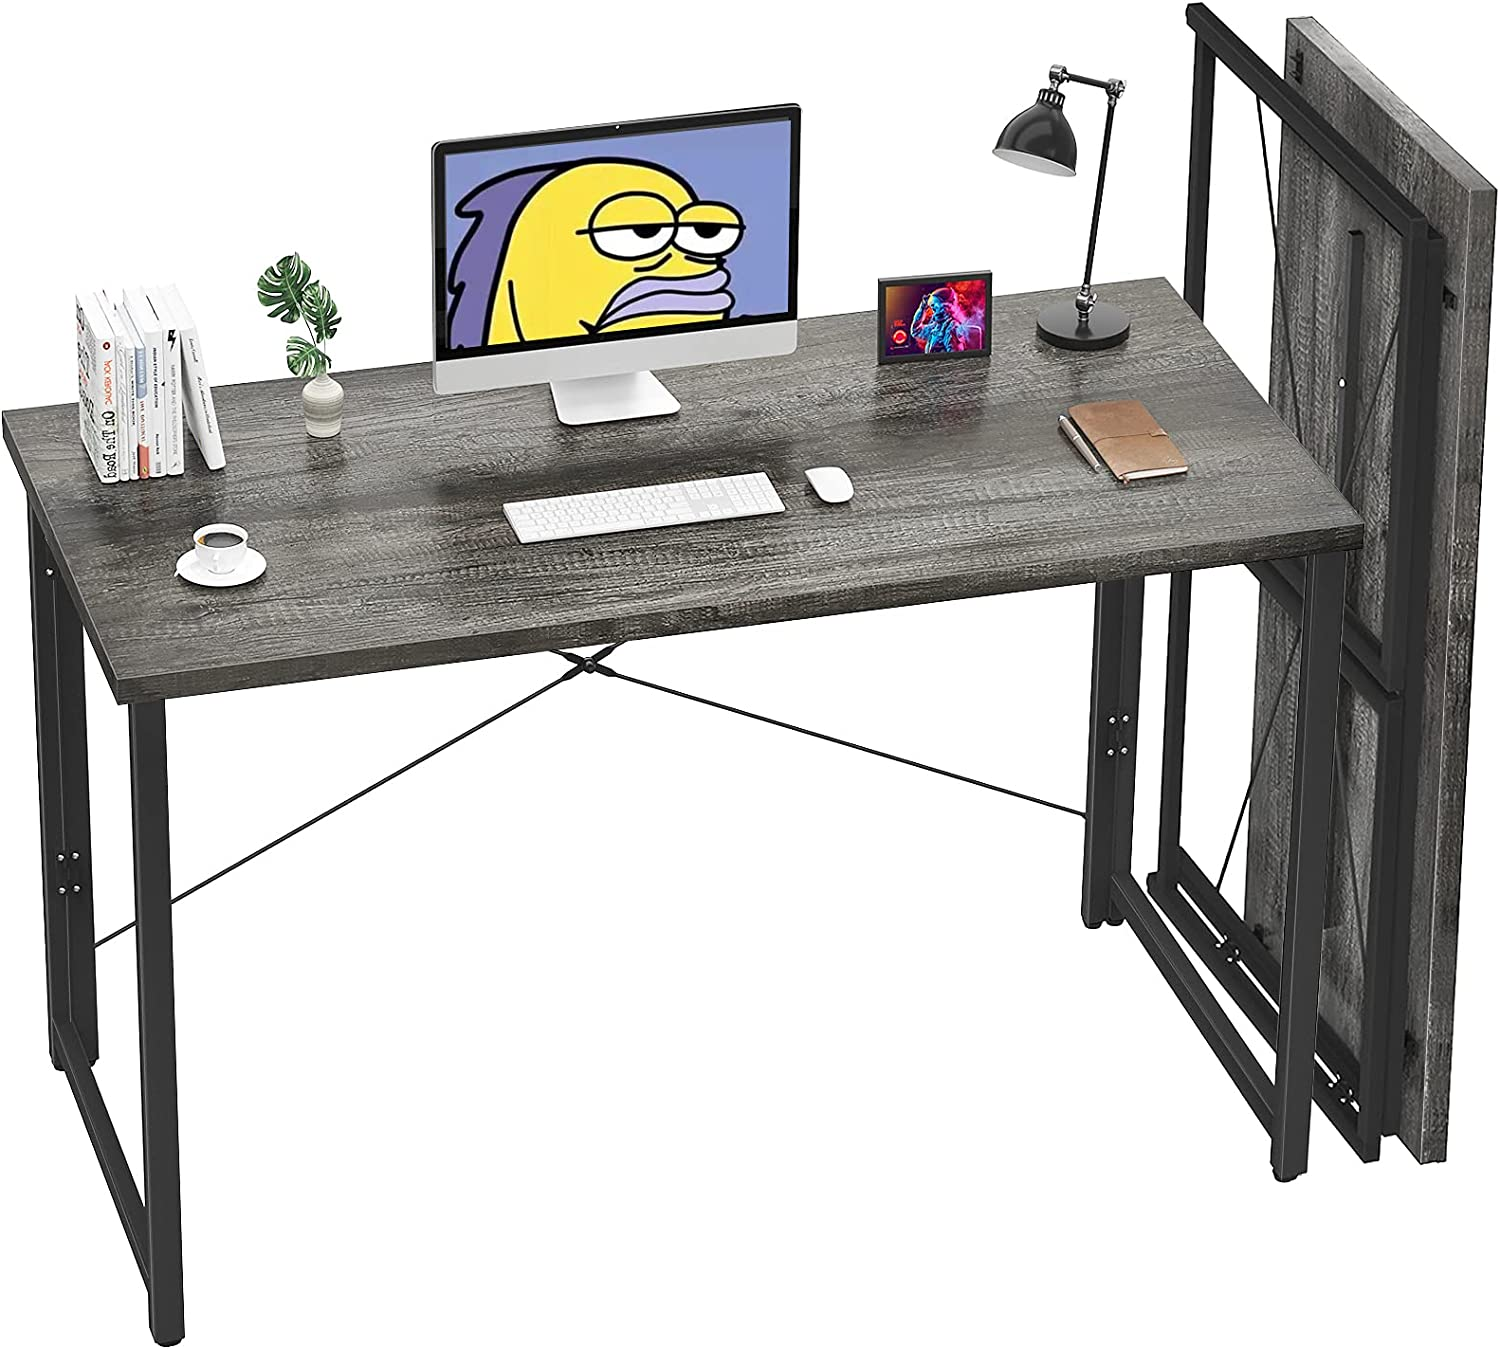 Unikito Folding Computer Desk 41 Inch No Assembly Small Work Desk for Home Office Simple Writing Desk Foldable Desk for Small Spaces, Workstation | Grey Oak